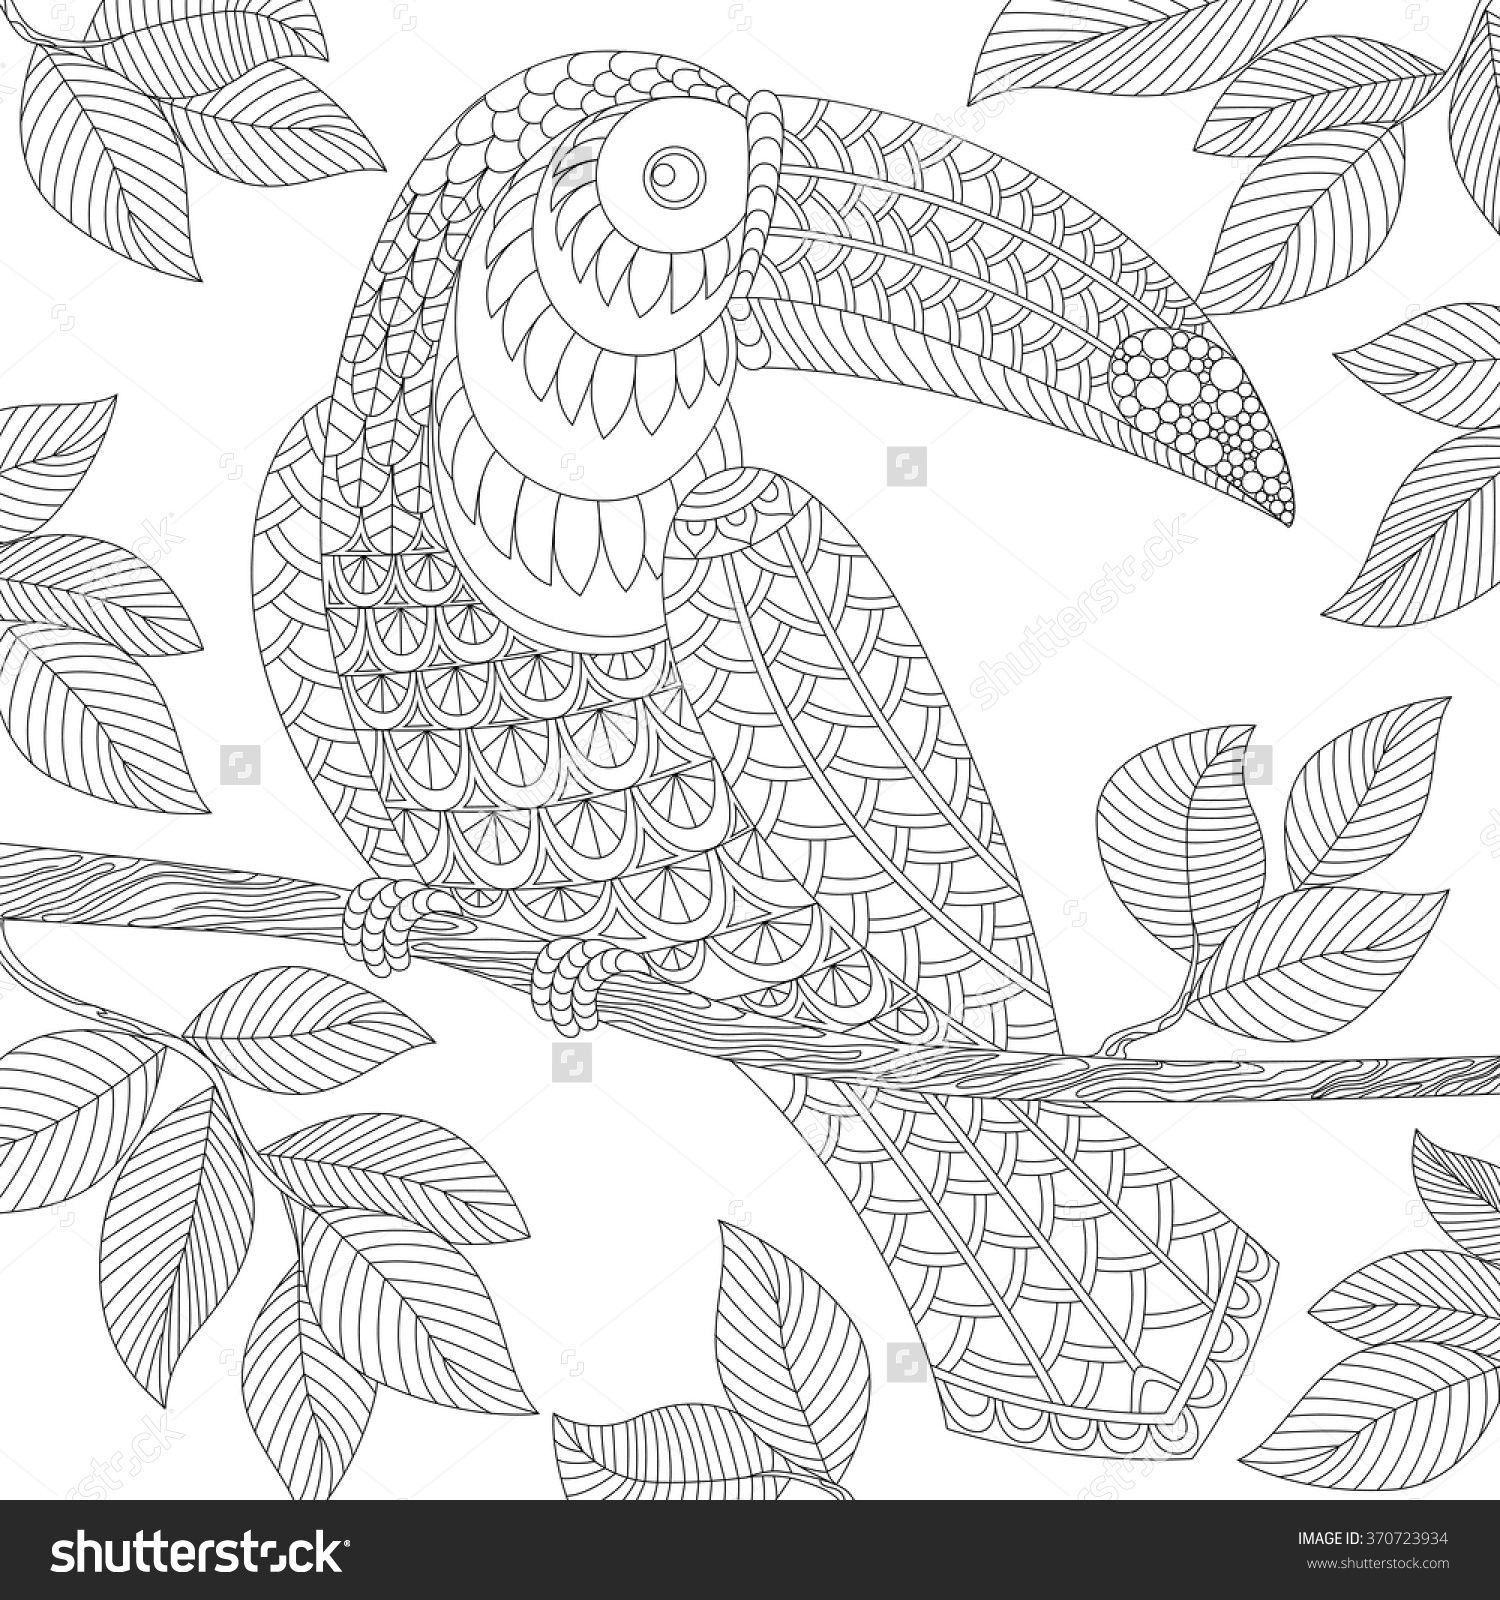 Toucan Adult Antistress Coloring Page Black And White Hand Drawn